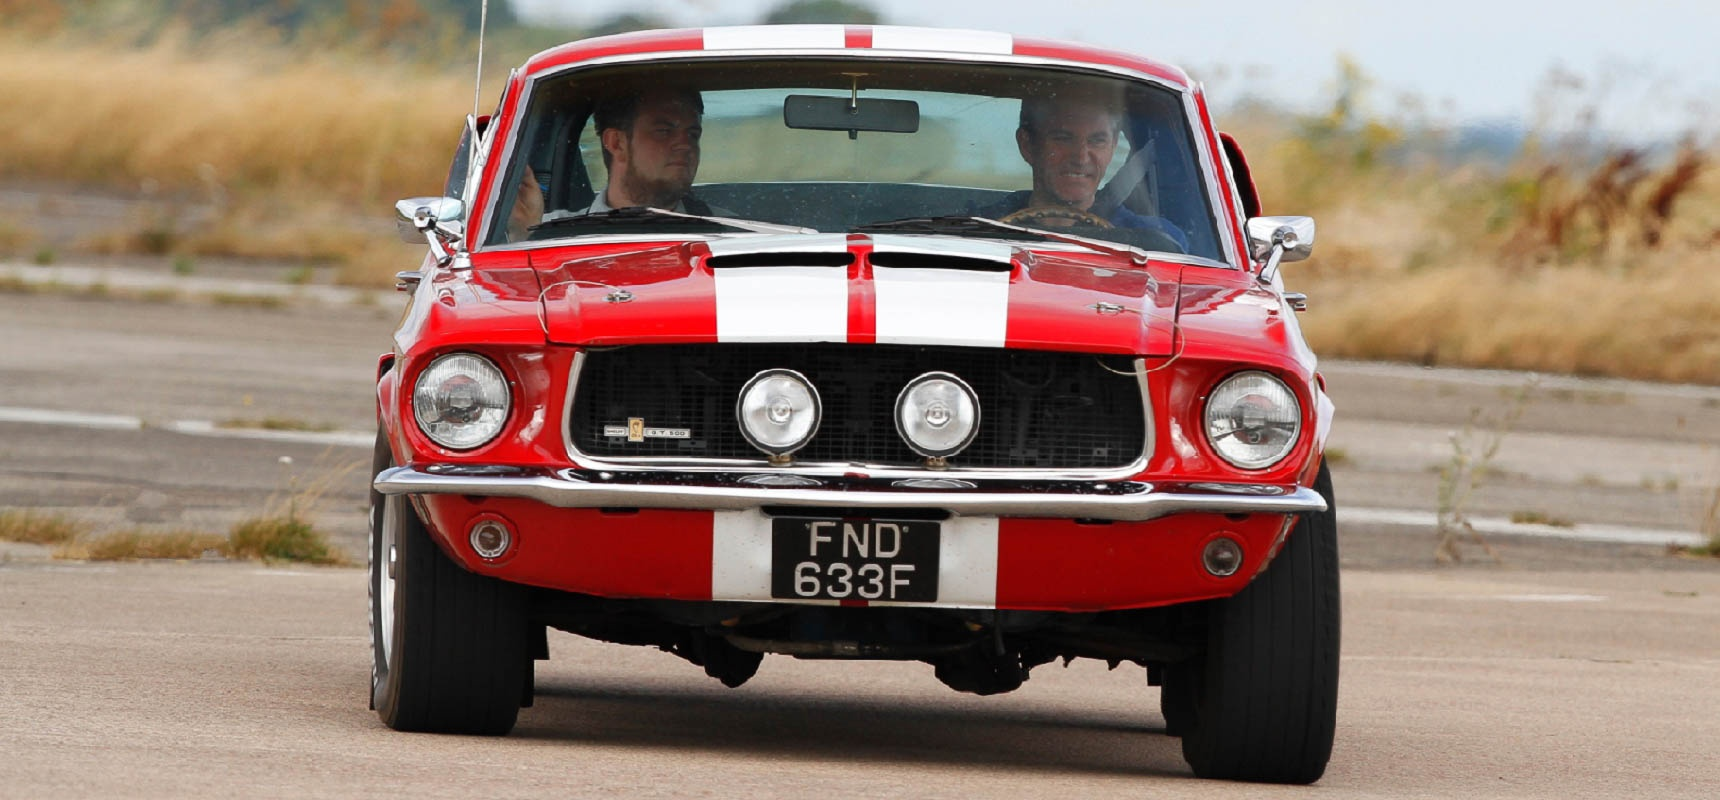 Drive a ford mustang in oxfordshire 3